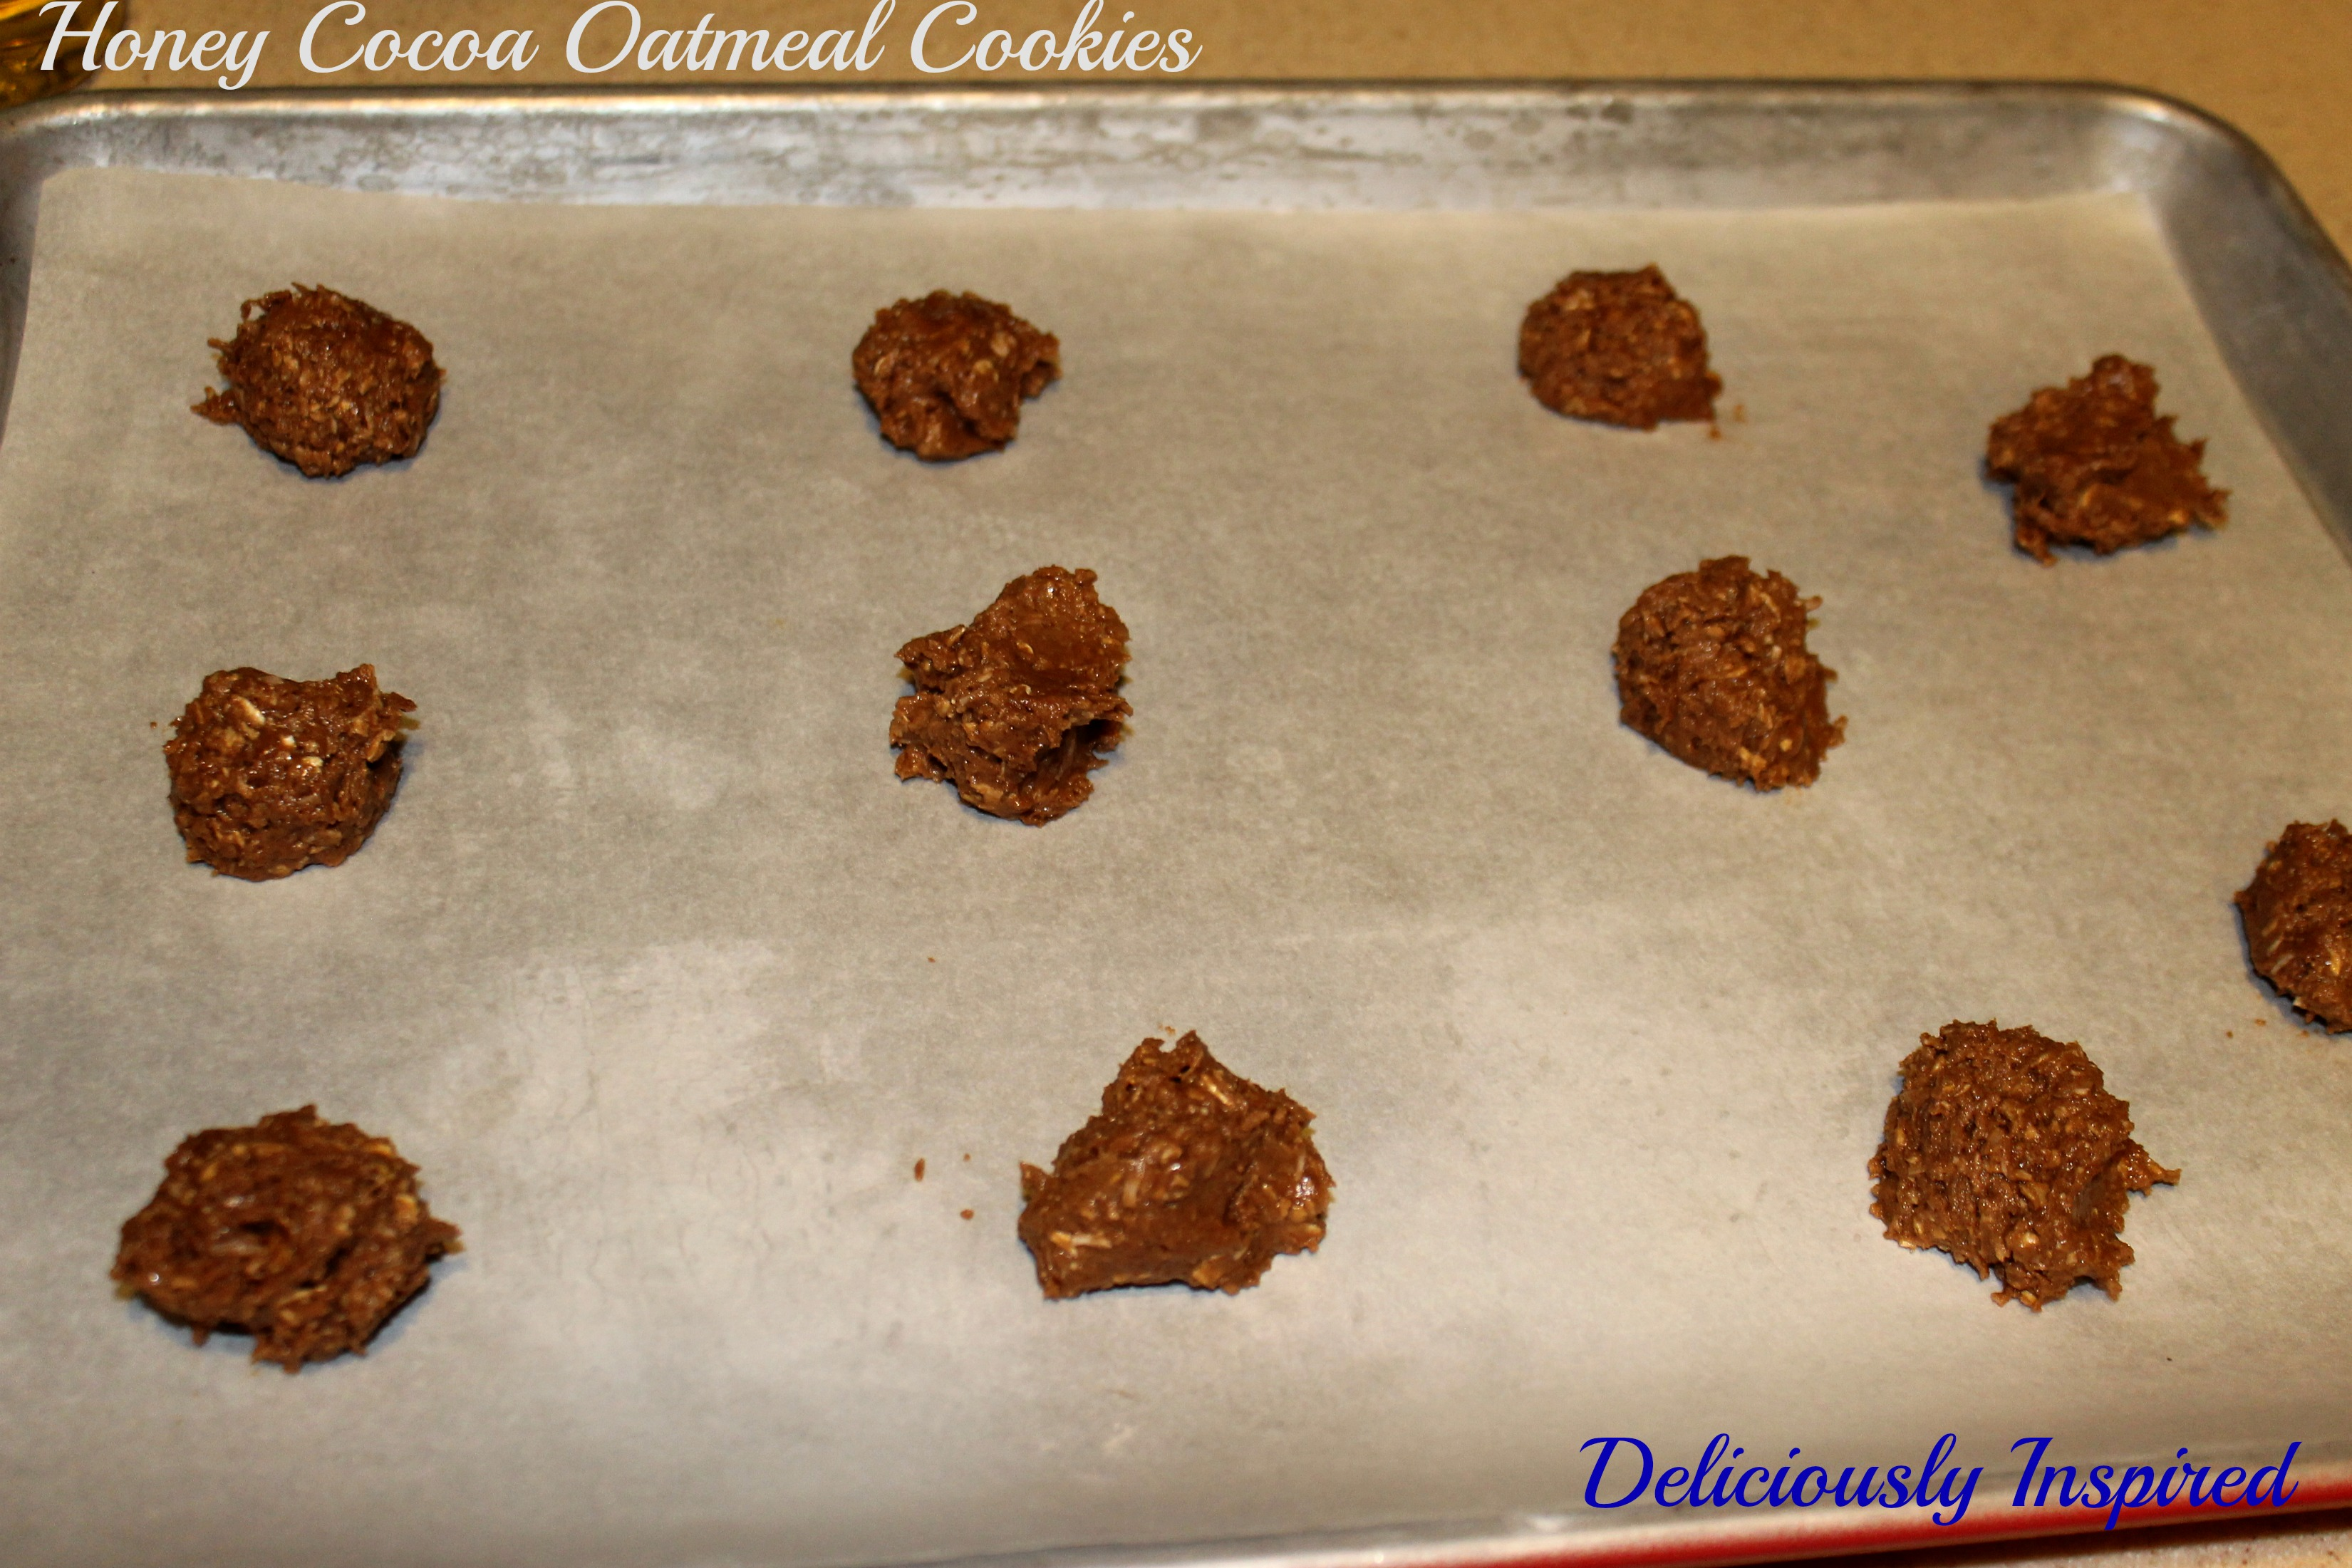 Honey Cocoa Oatmeal Cookies - ready to bake